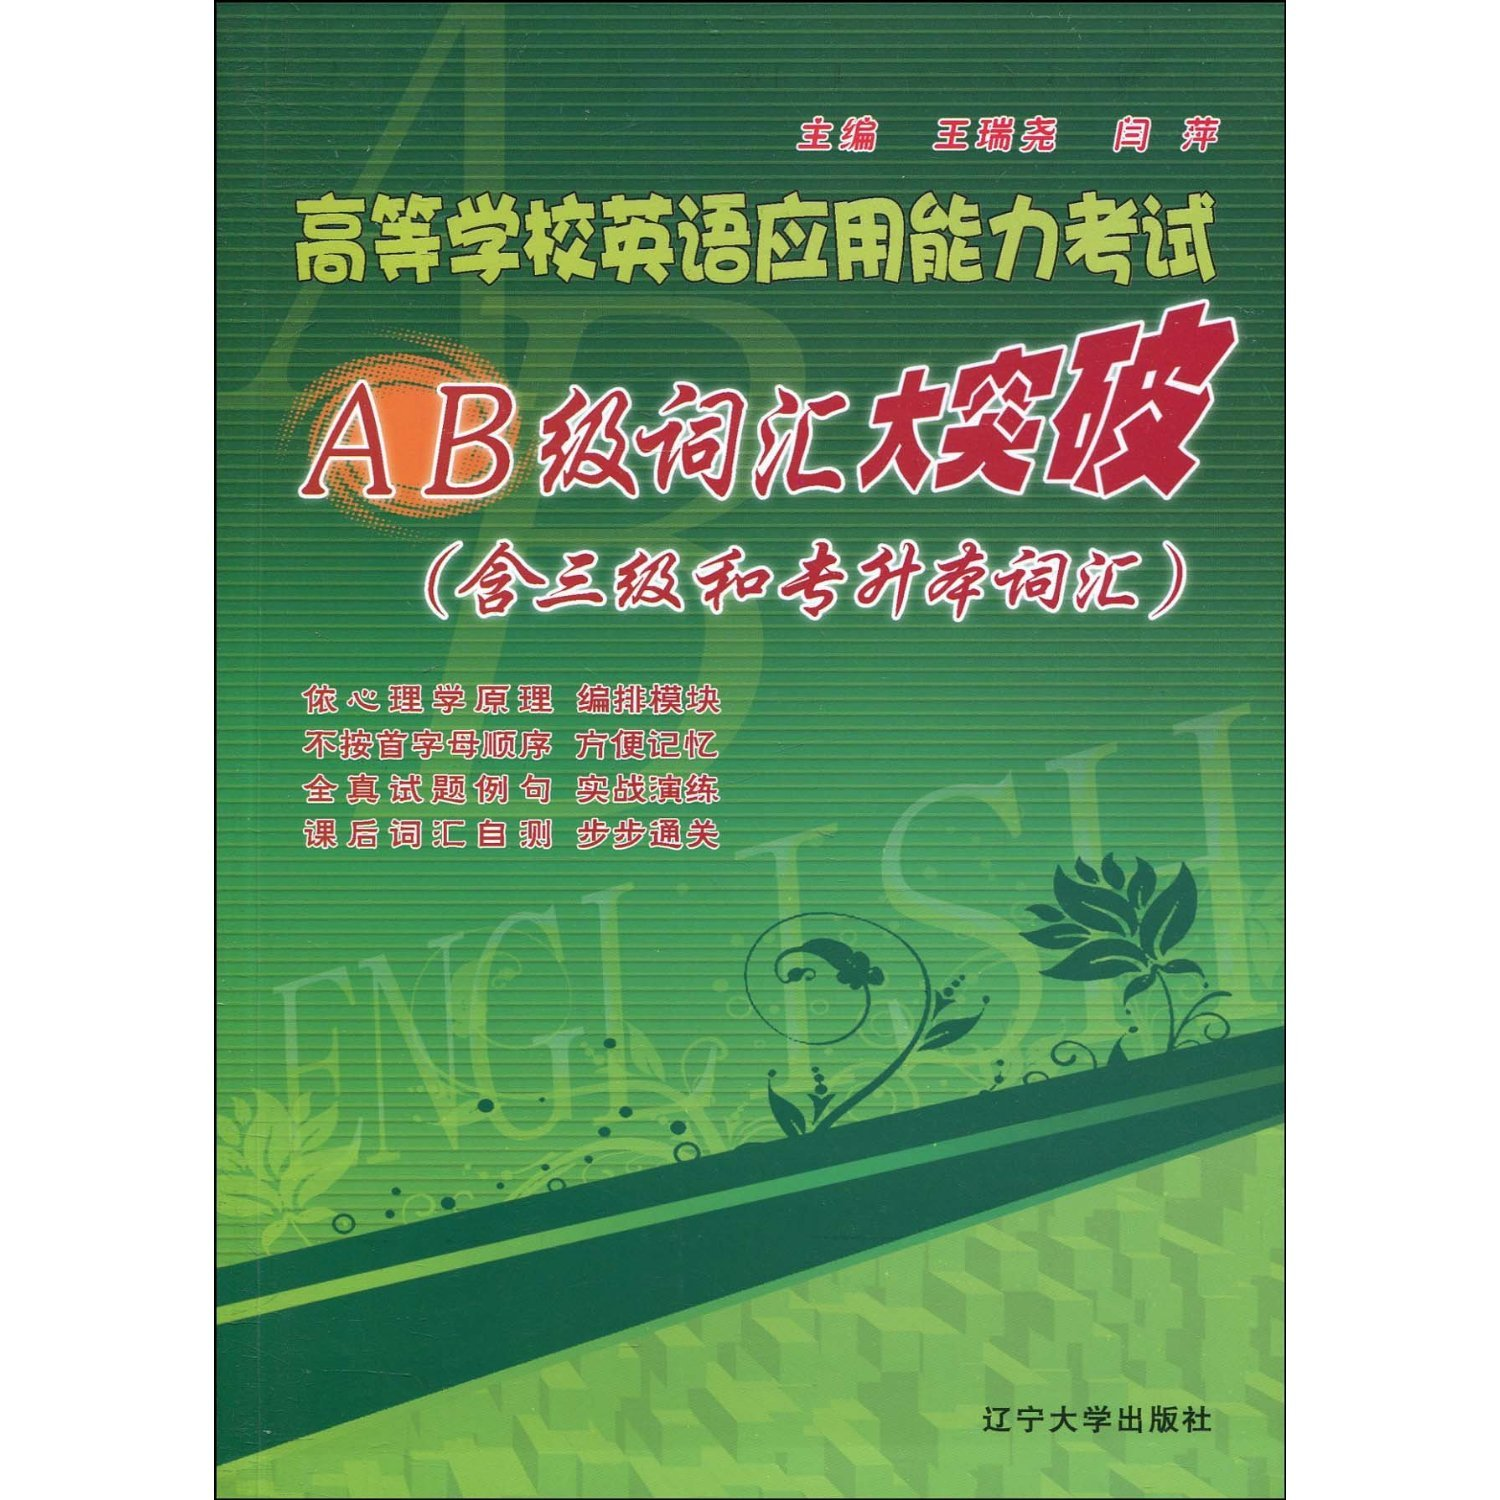 Read Online Practical English Test For Colleges AB vocabulary breakthrough - (level-3 and top-up vocabularies included) (Chinese Edition) pdf